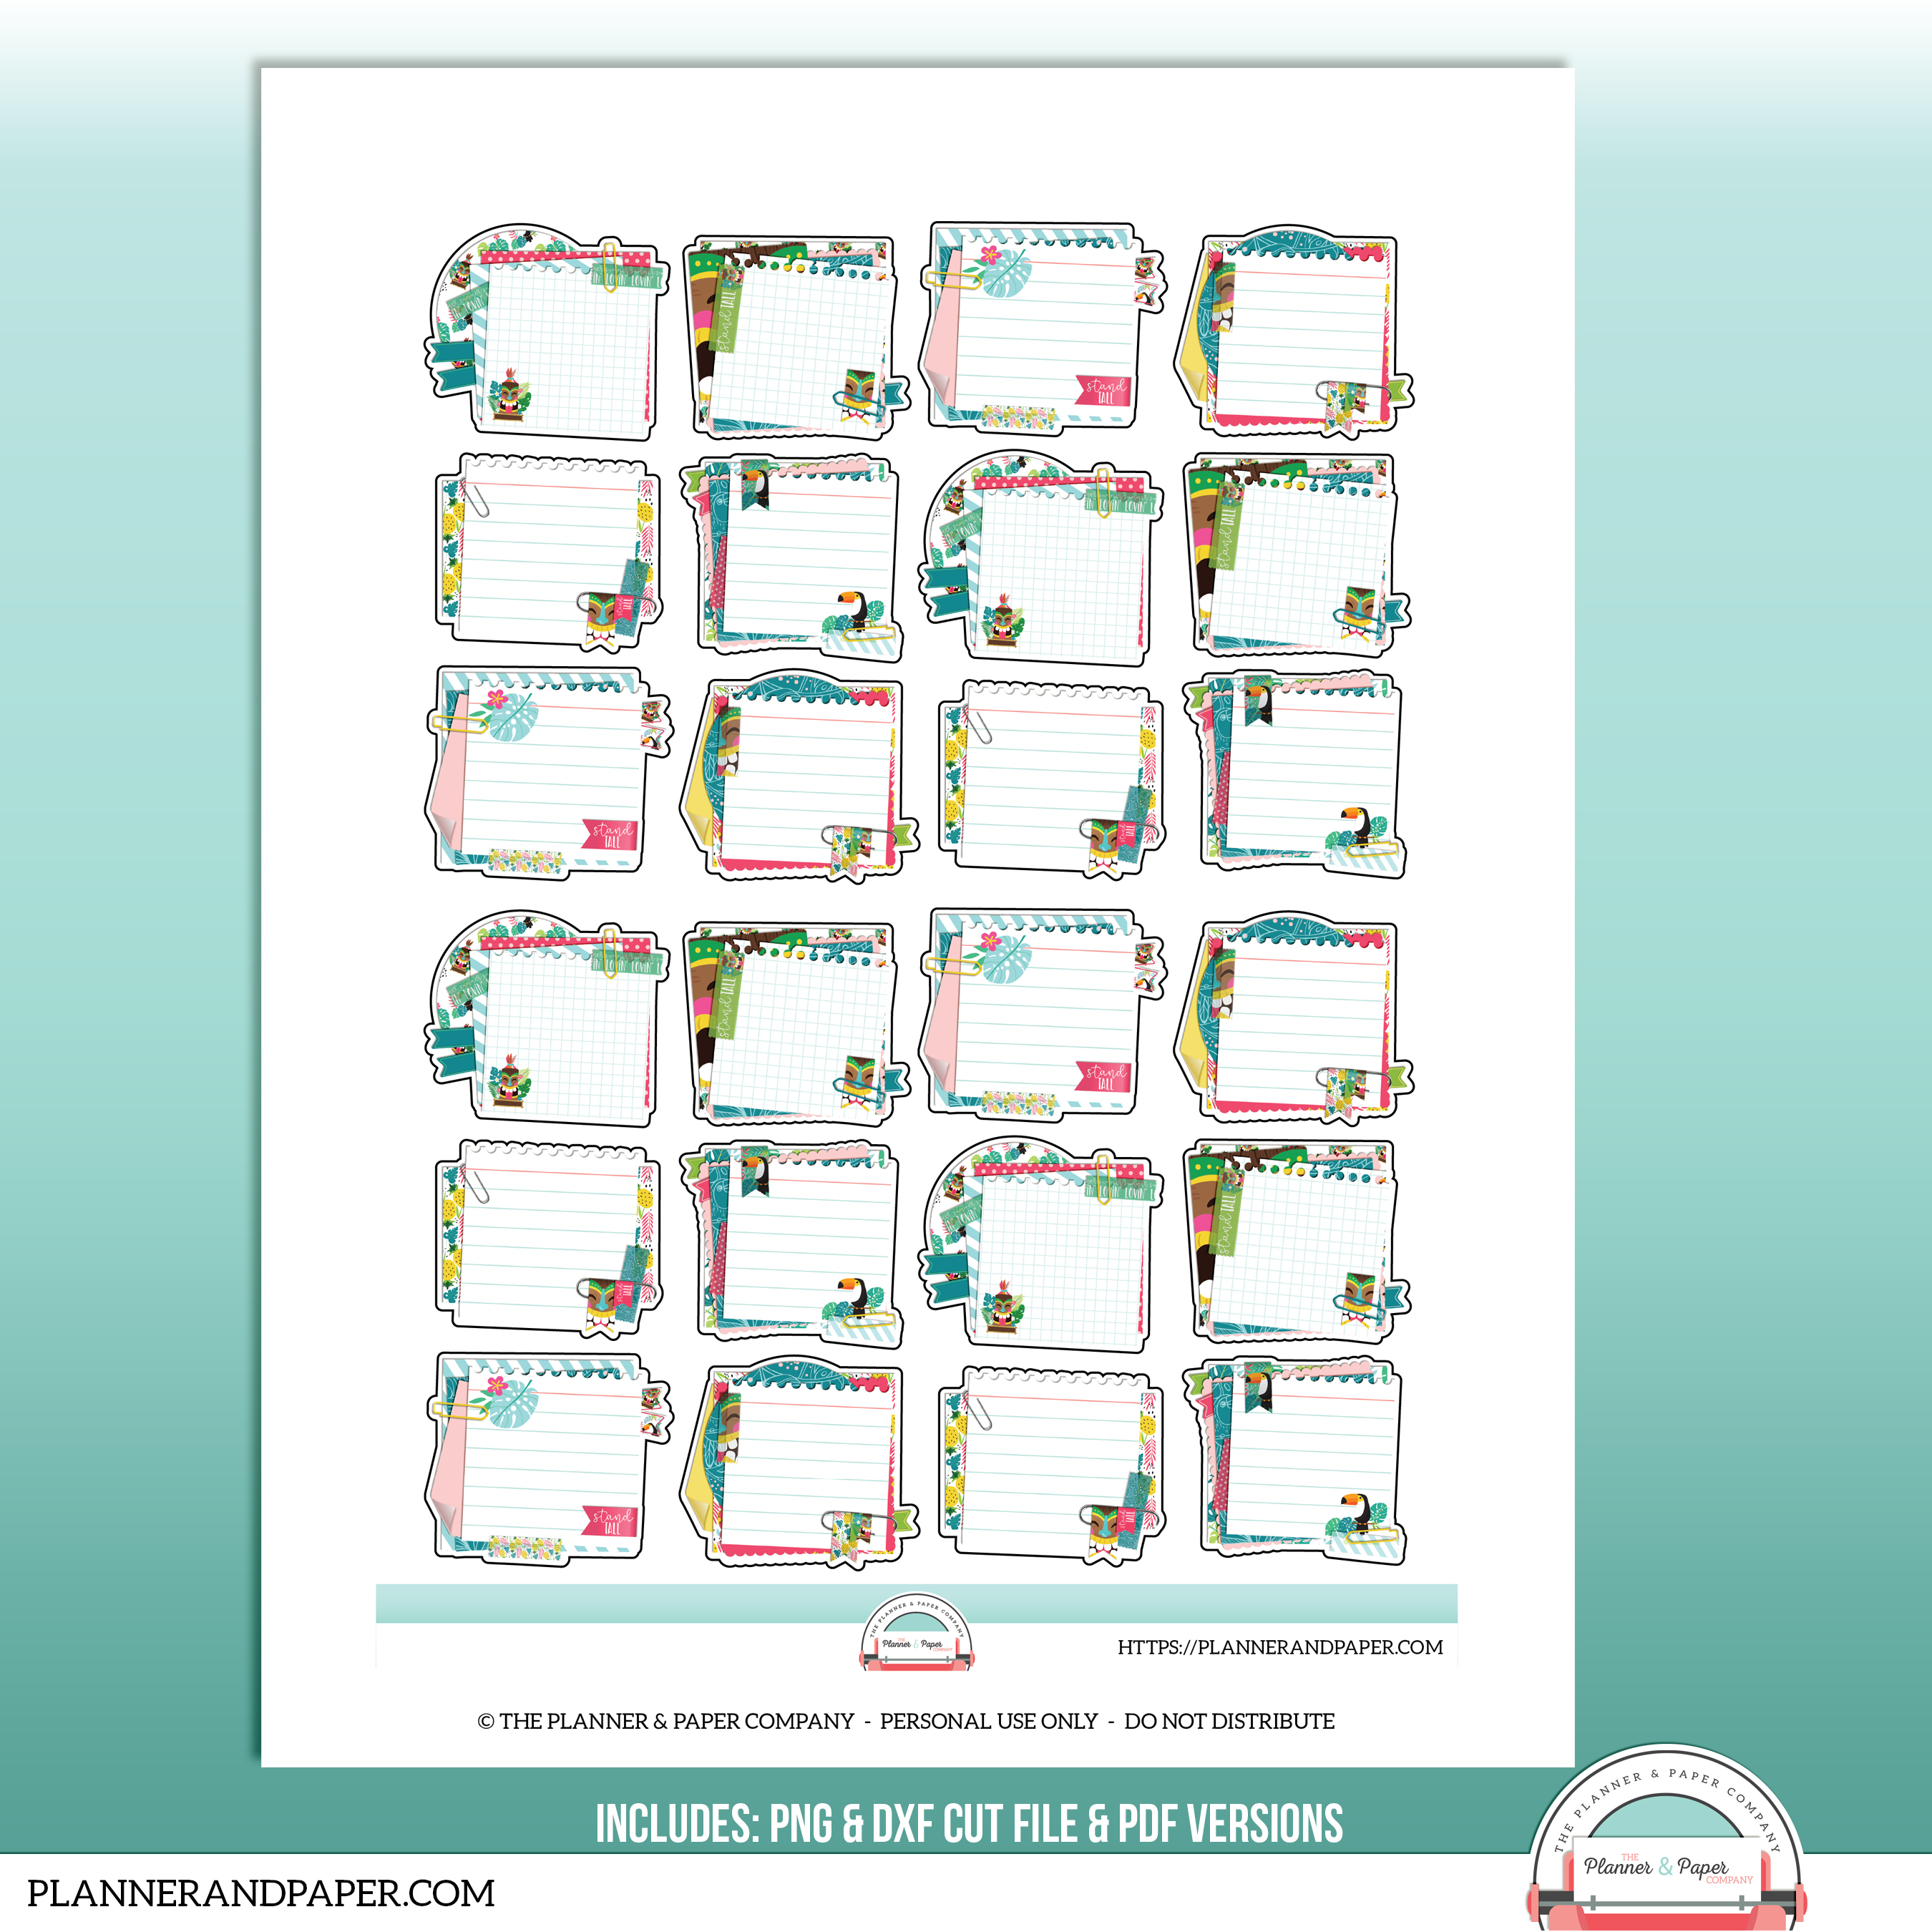 photograph about Printable Sticker Sheet titled Printable Hobonichi Stacked Tiki Sticky Observe Planner Sticker Sheet